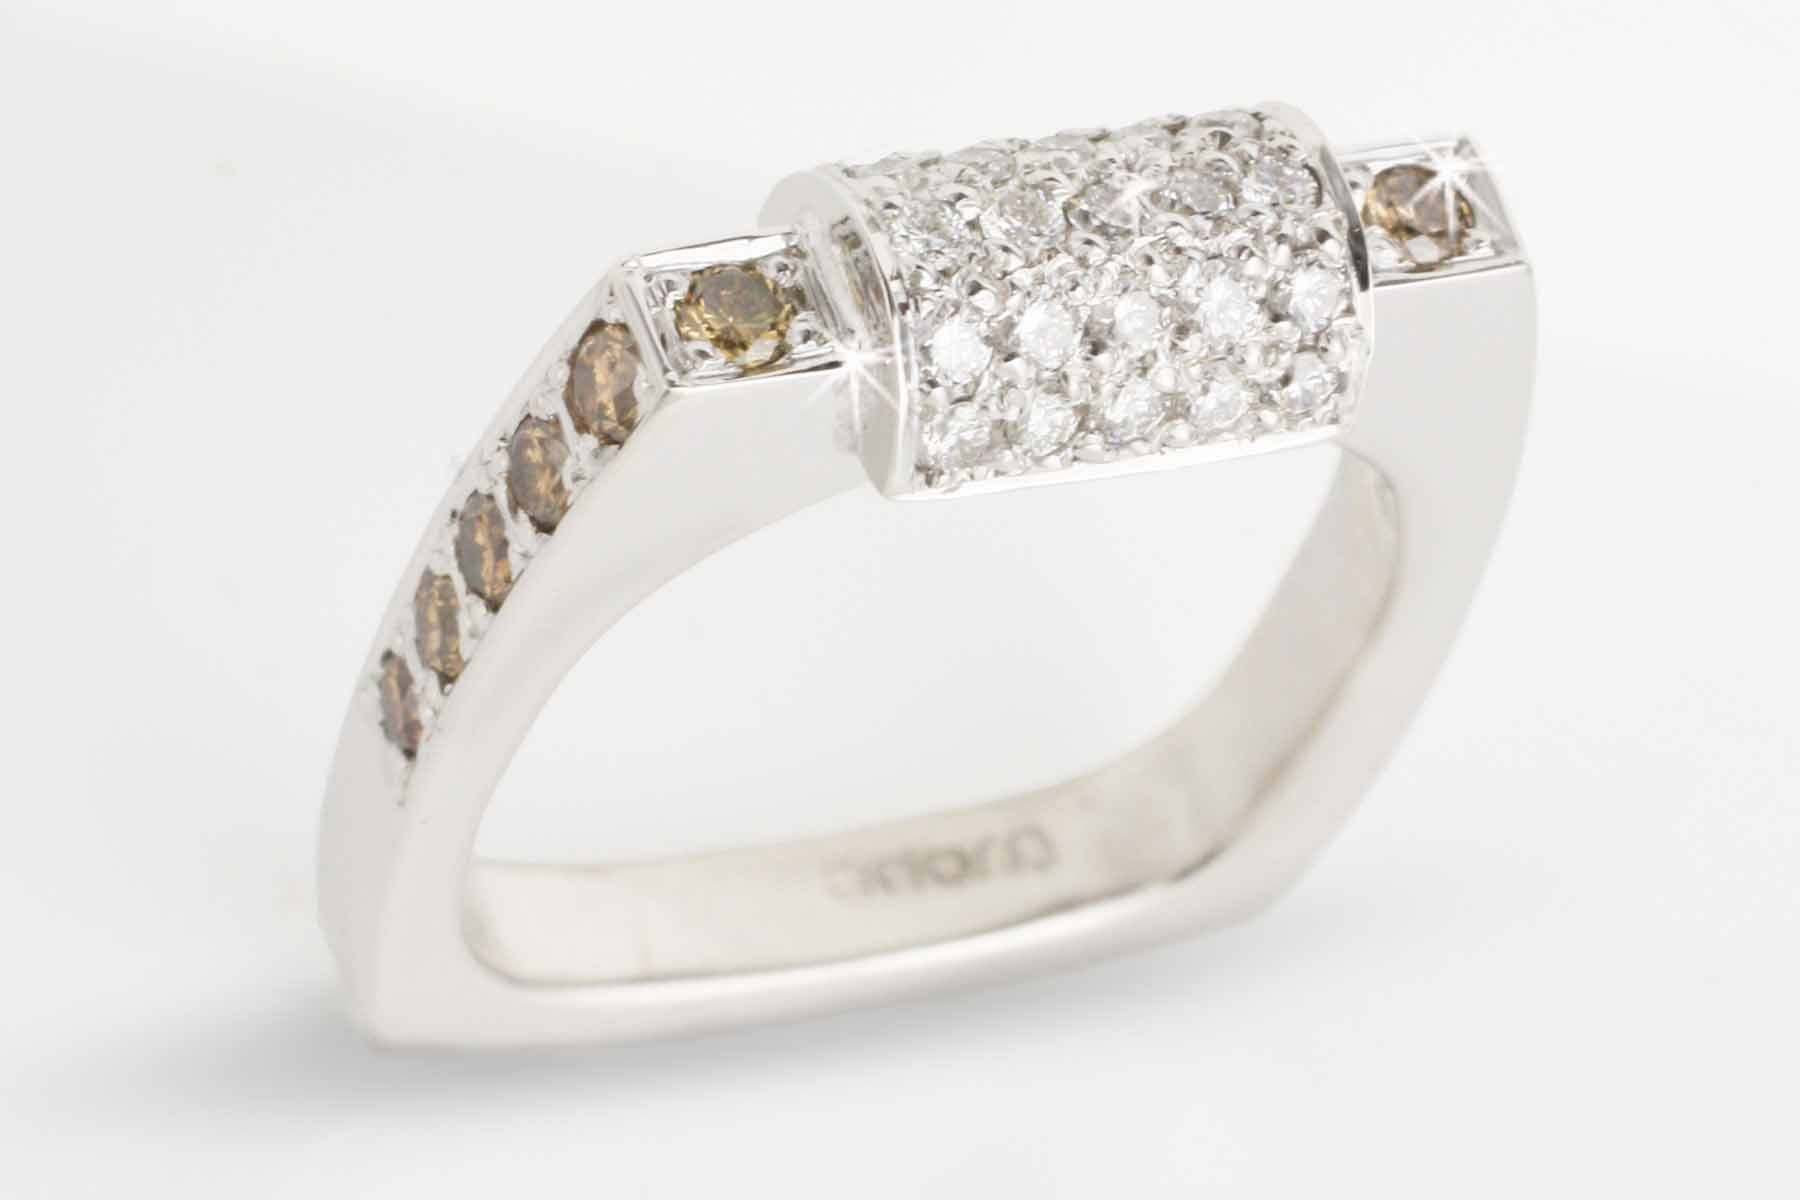 Adorn Jewels Adelaide Jewellery Champagne diamond ring